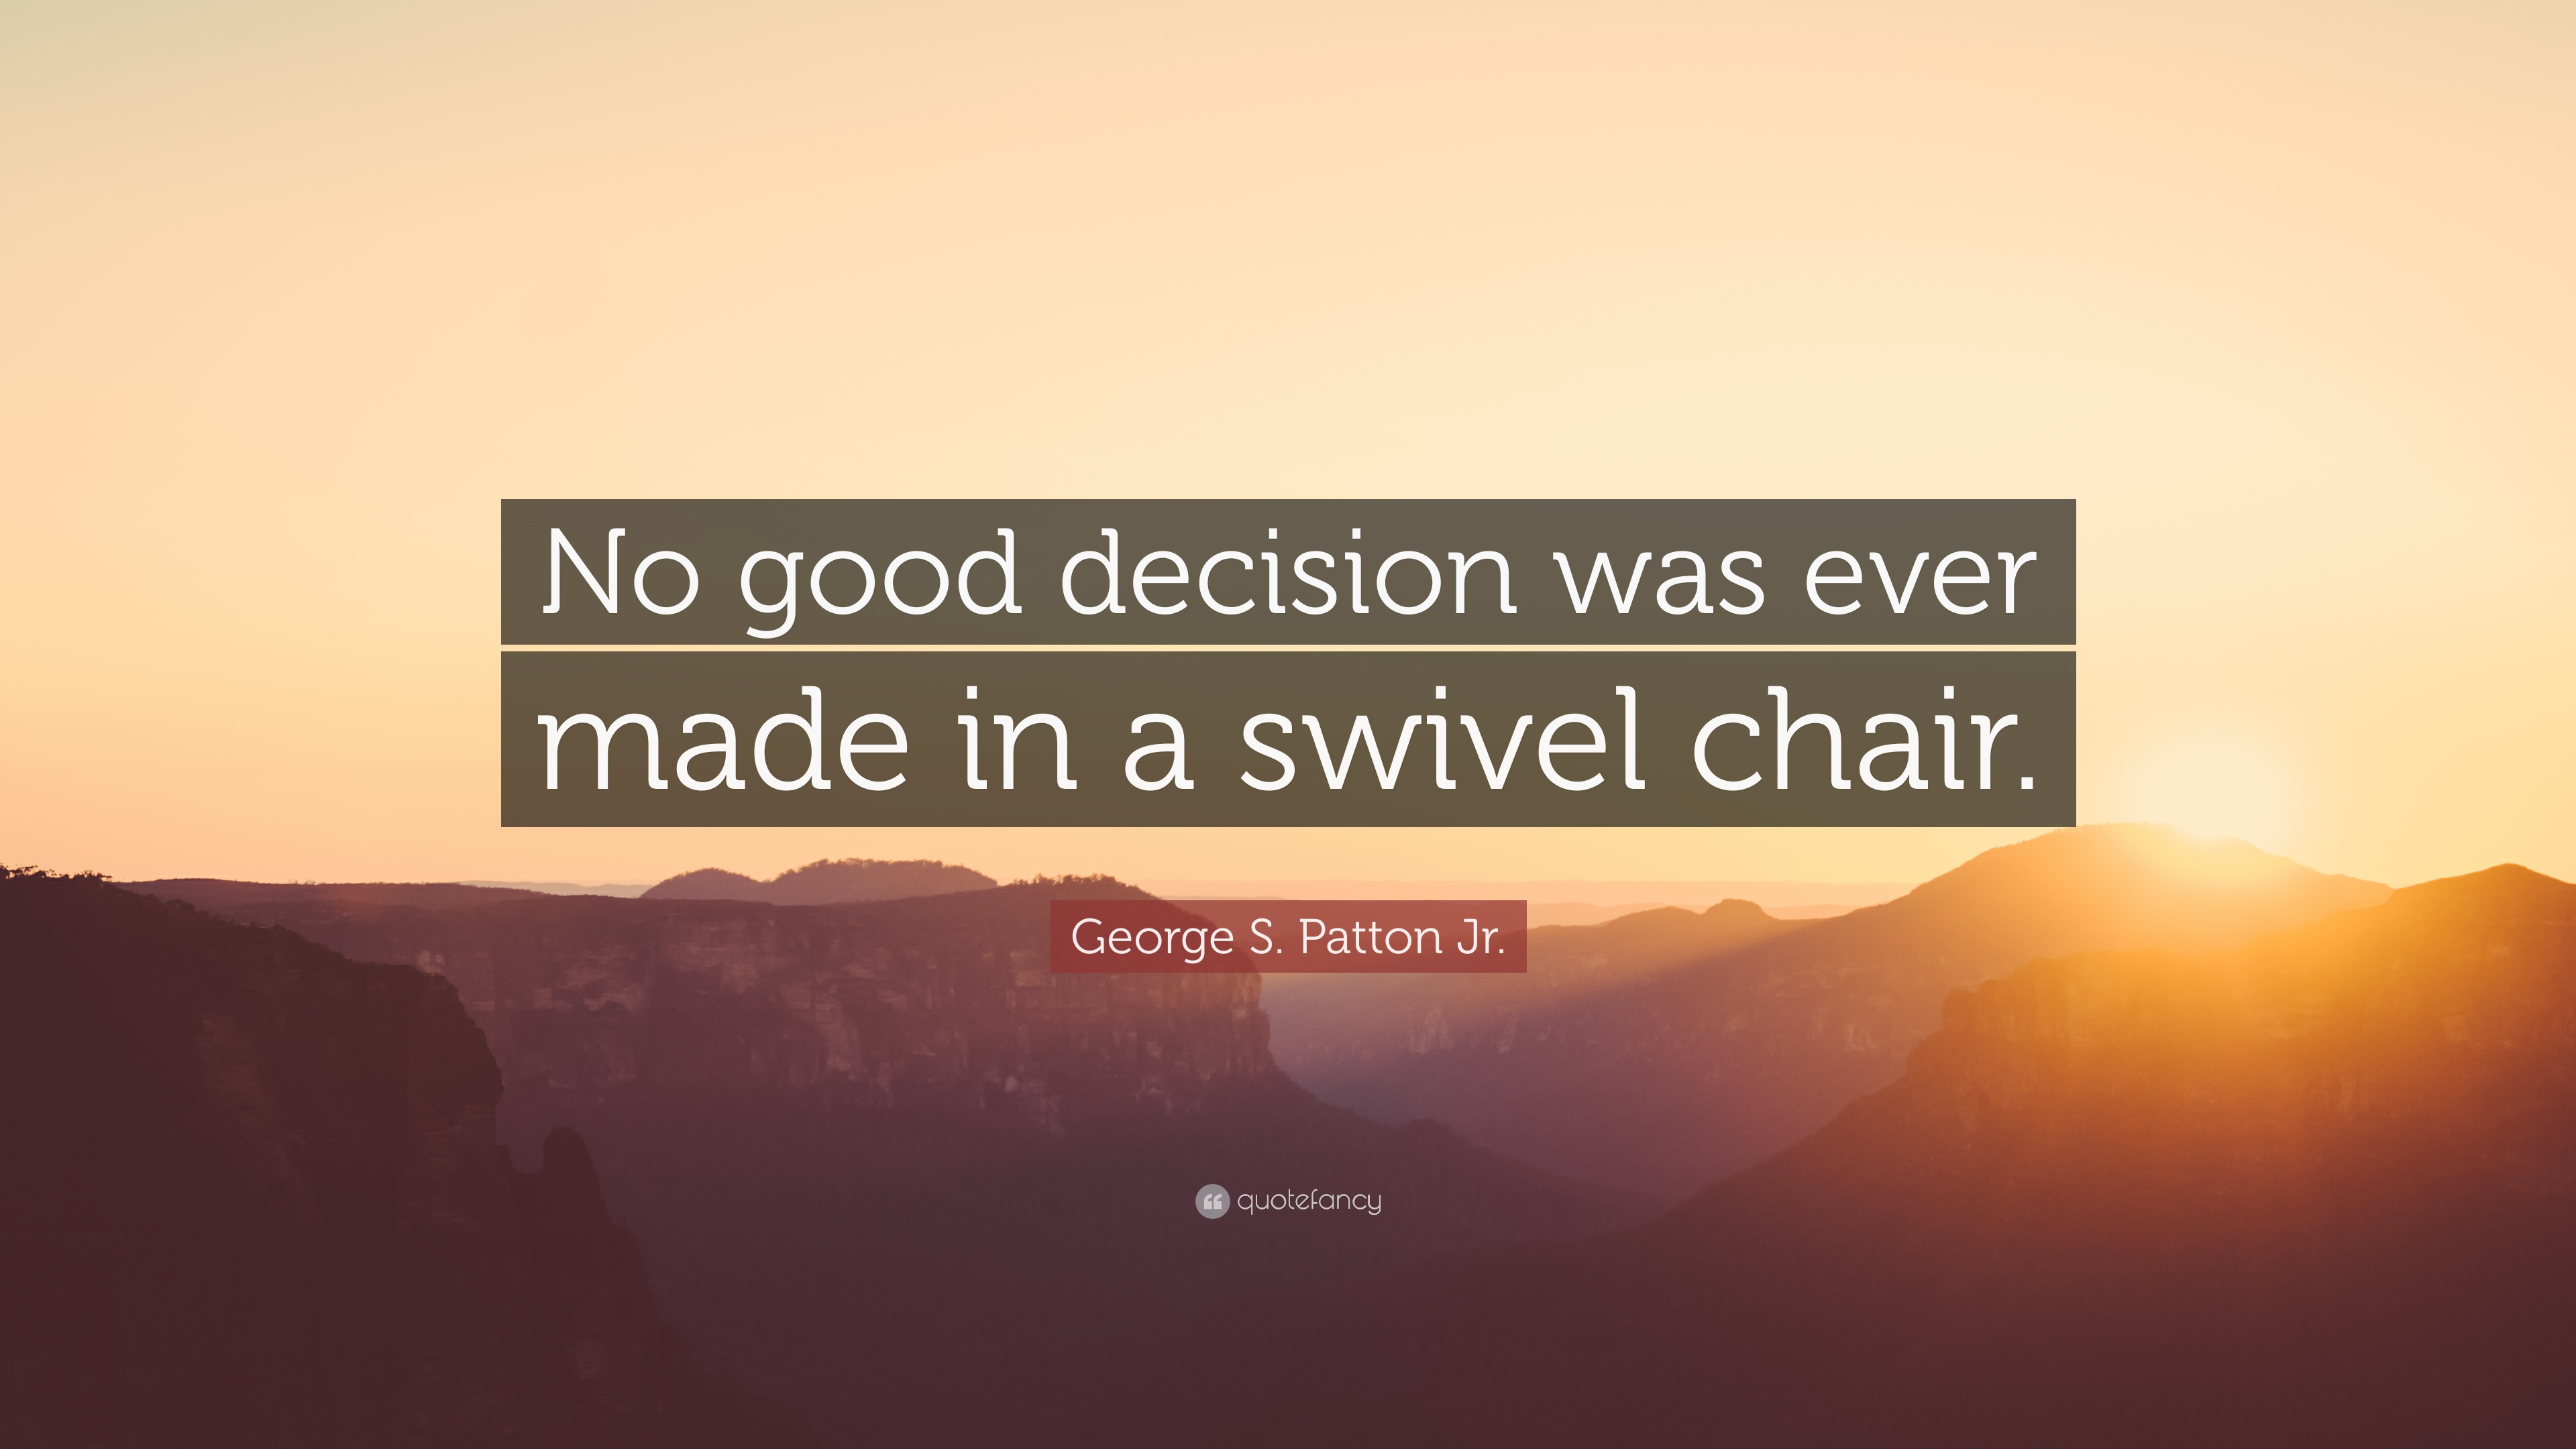 swivel chair quotes accent grey pattern george s patton jr quote no good decision was ever